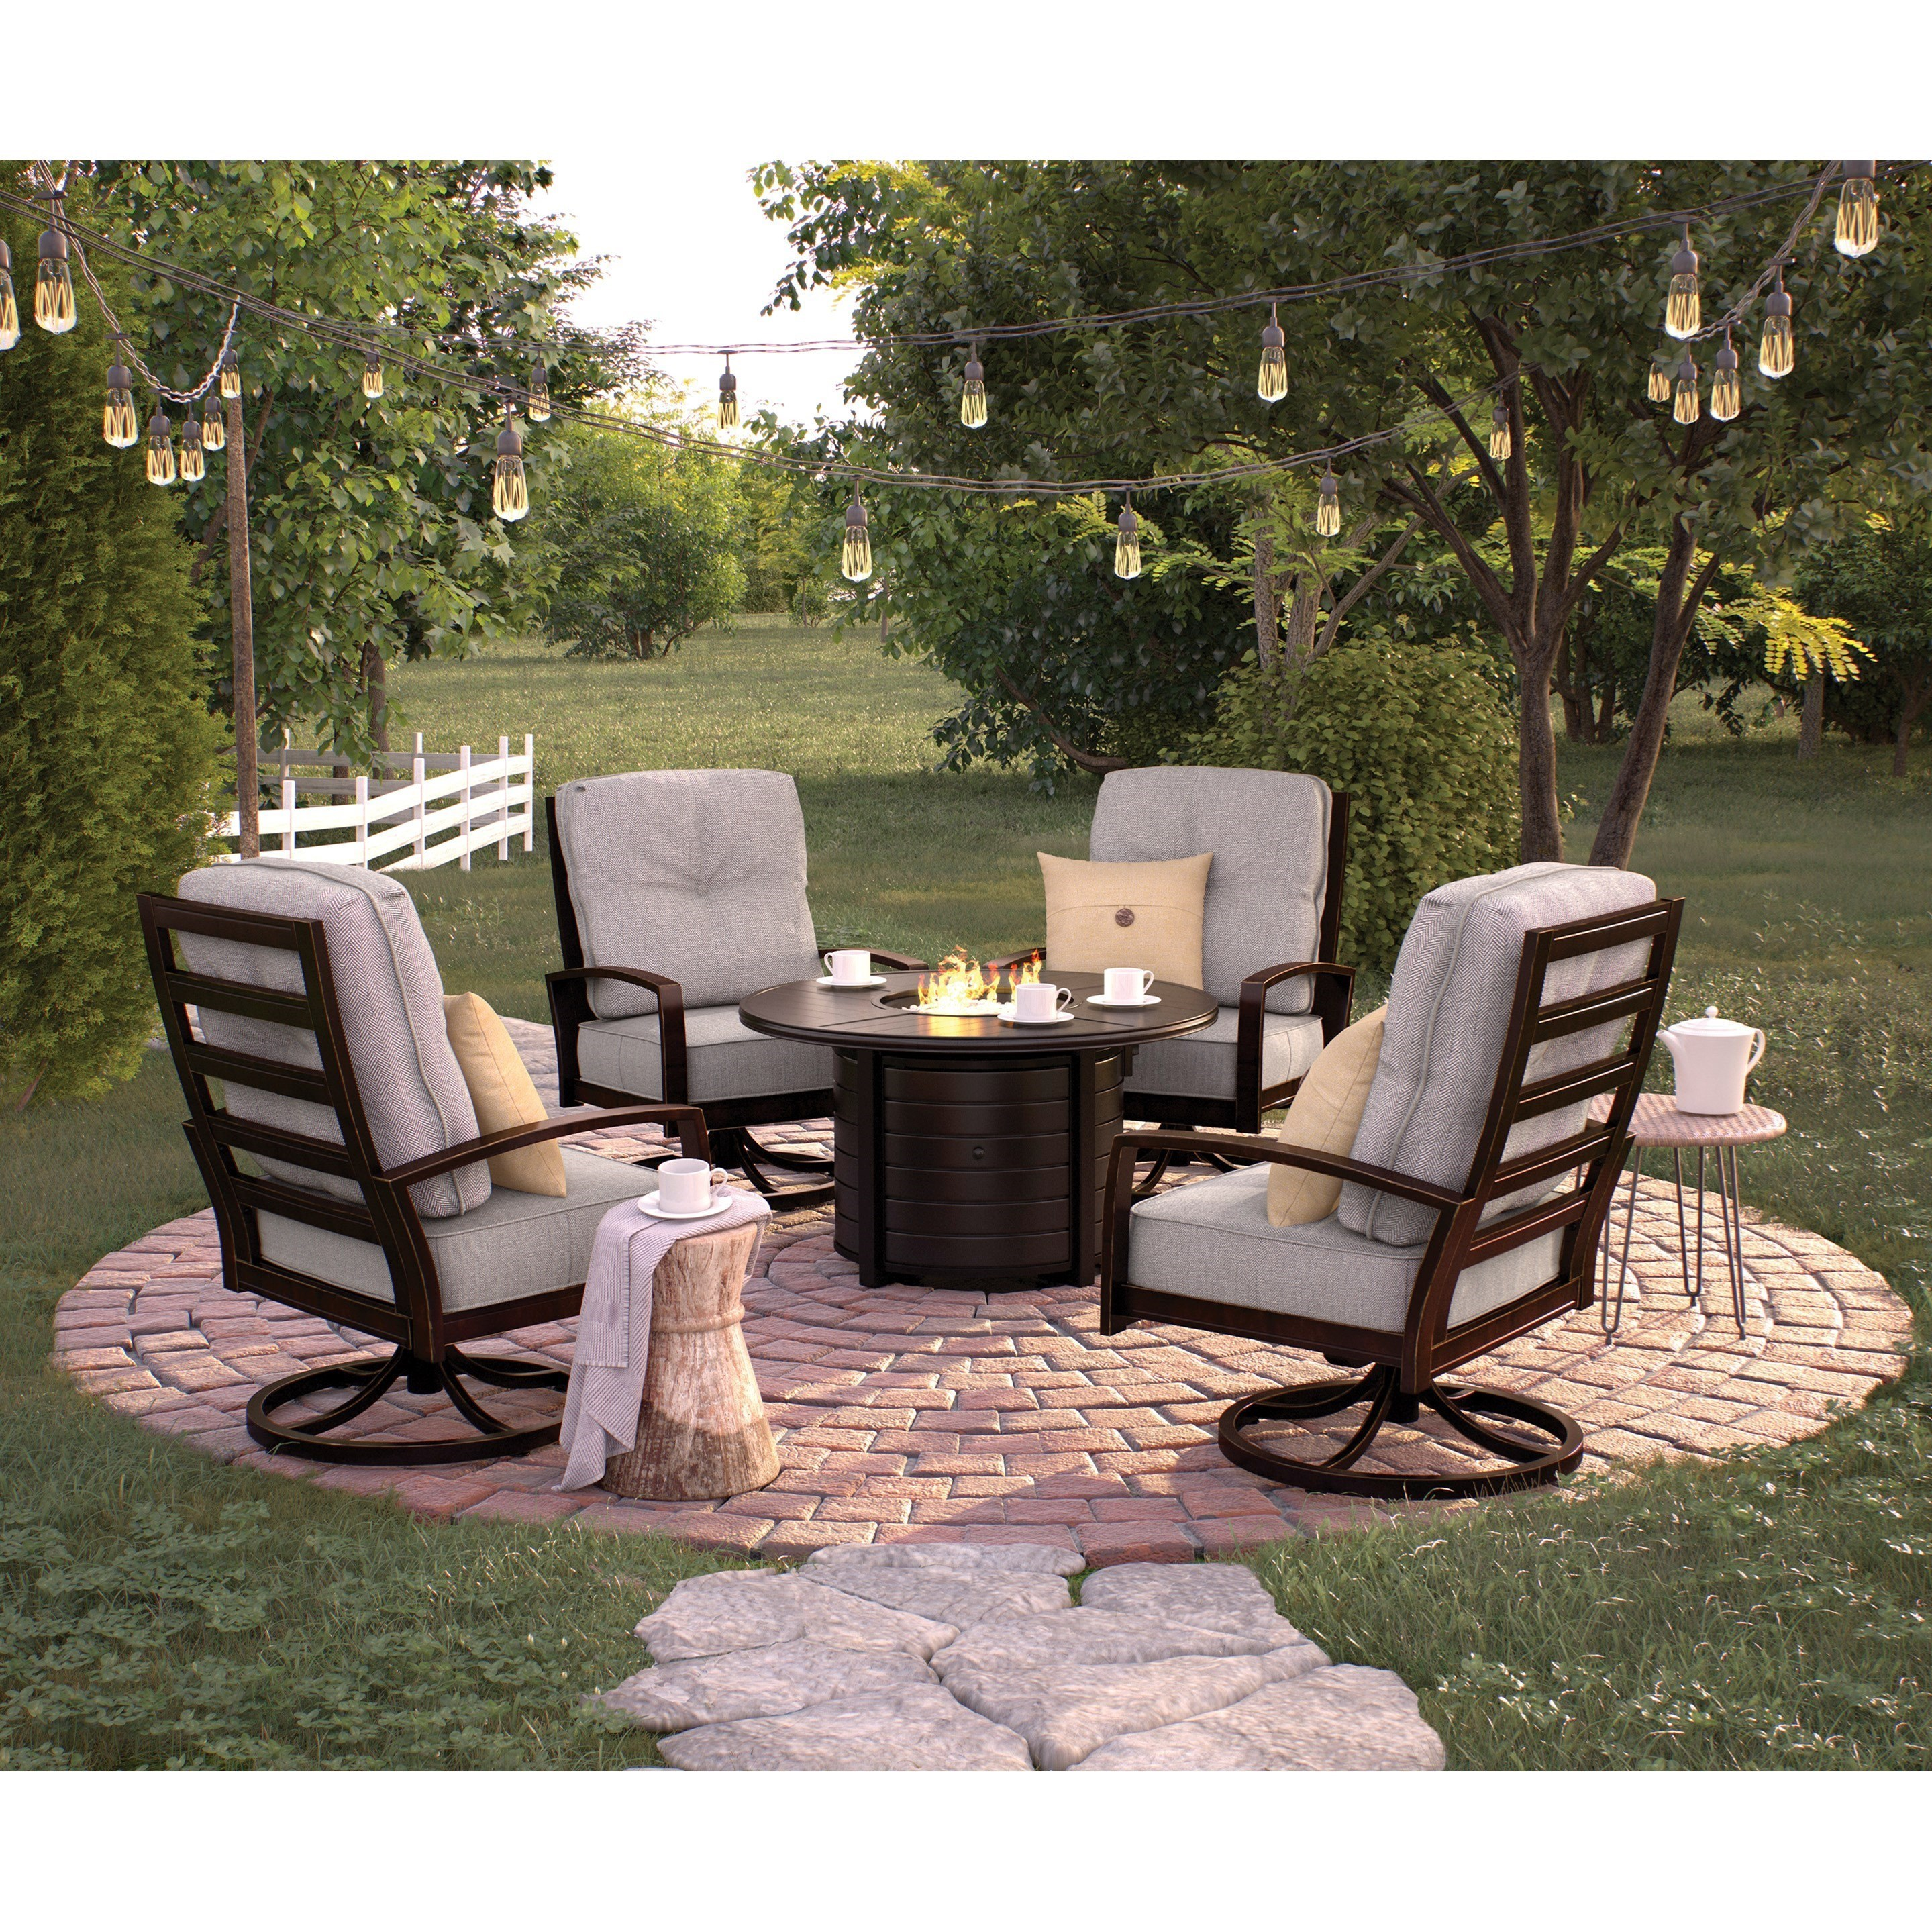 Charmant Signature Design By Ashley Castle Island Outdoor Conversation Set With Fire  Pit Table